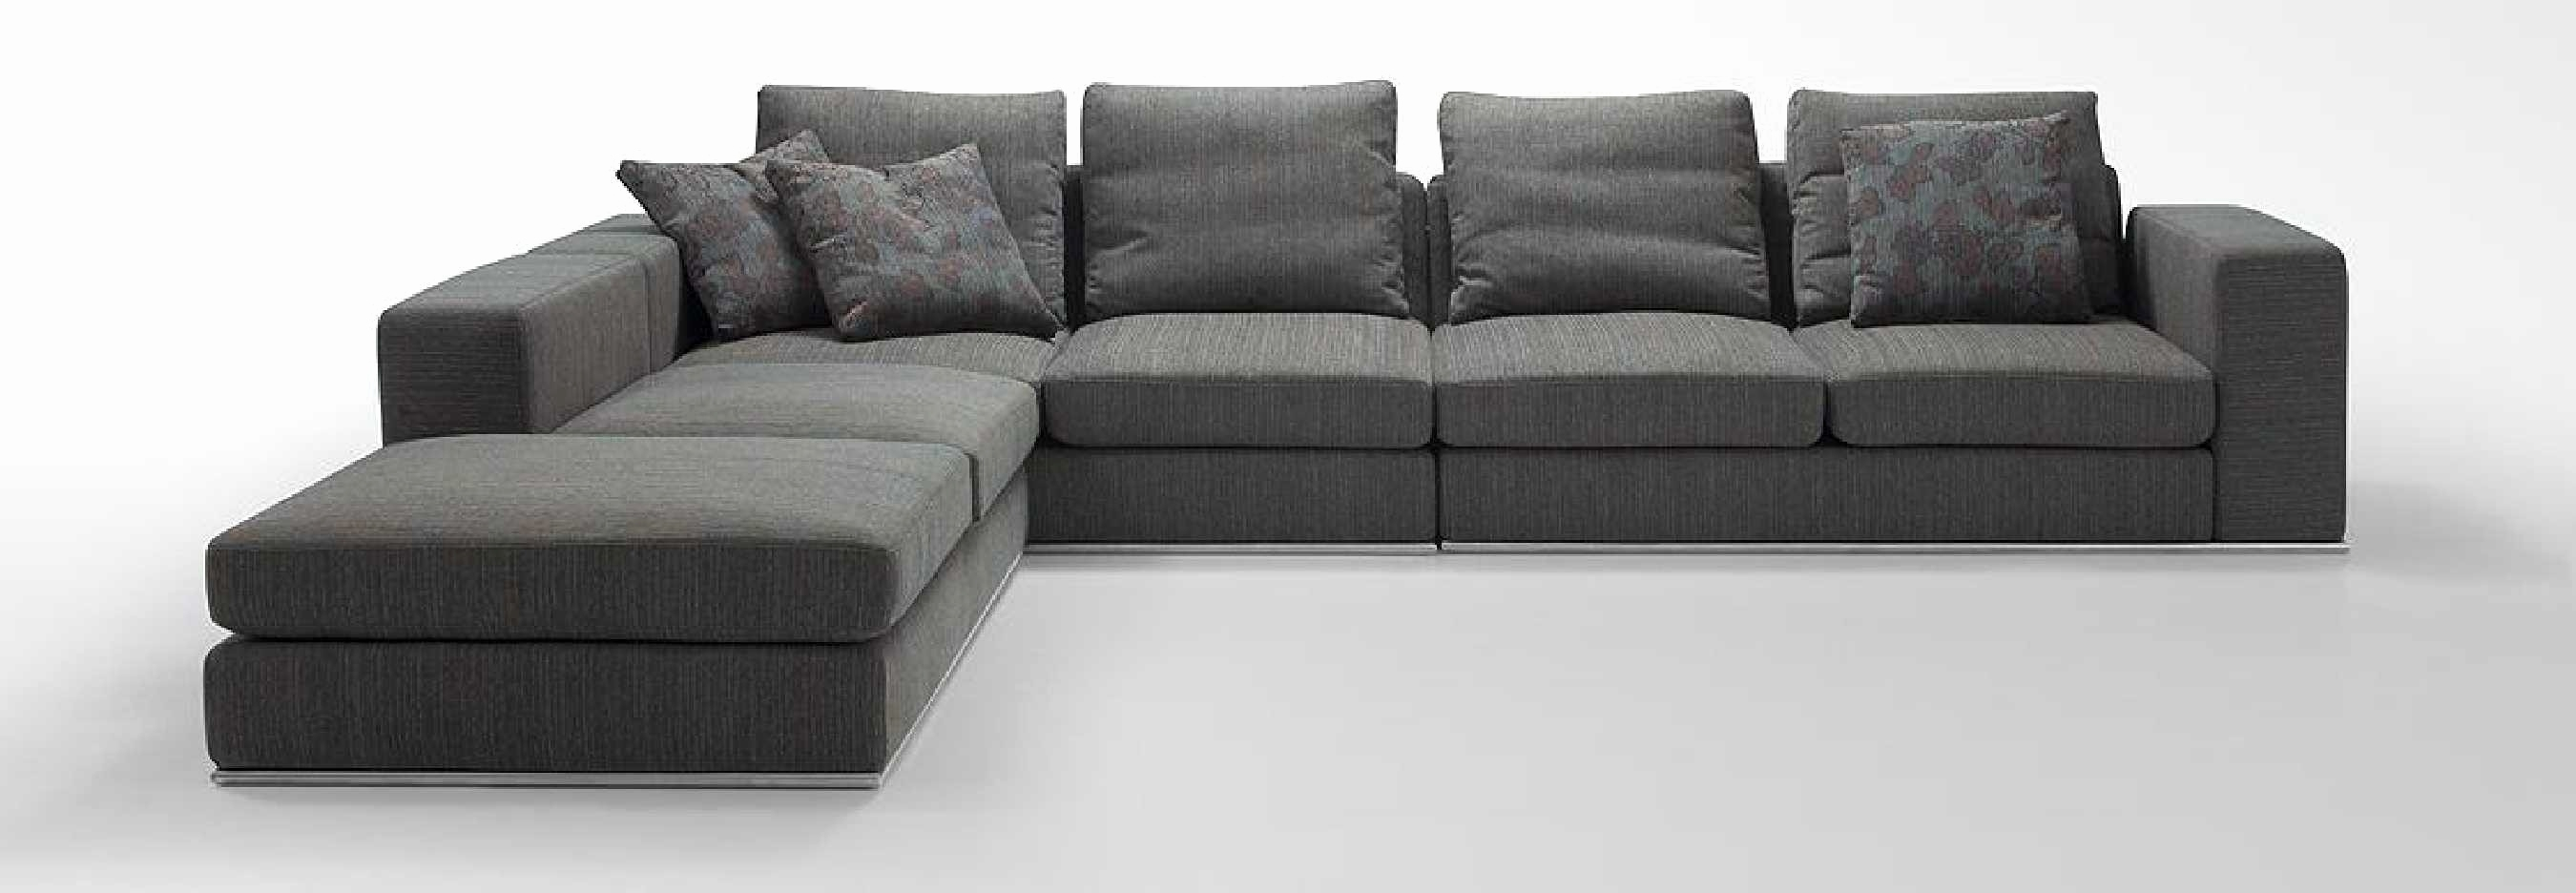 Best Small L Shaped Couch With Recliner 2018 – Couches And Sofas Ideas inside L Shaped Sectional Sofas (Image 1 of 10)